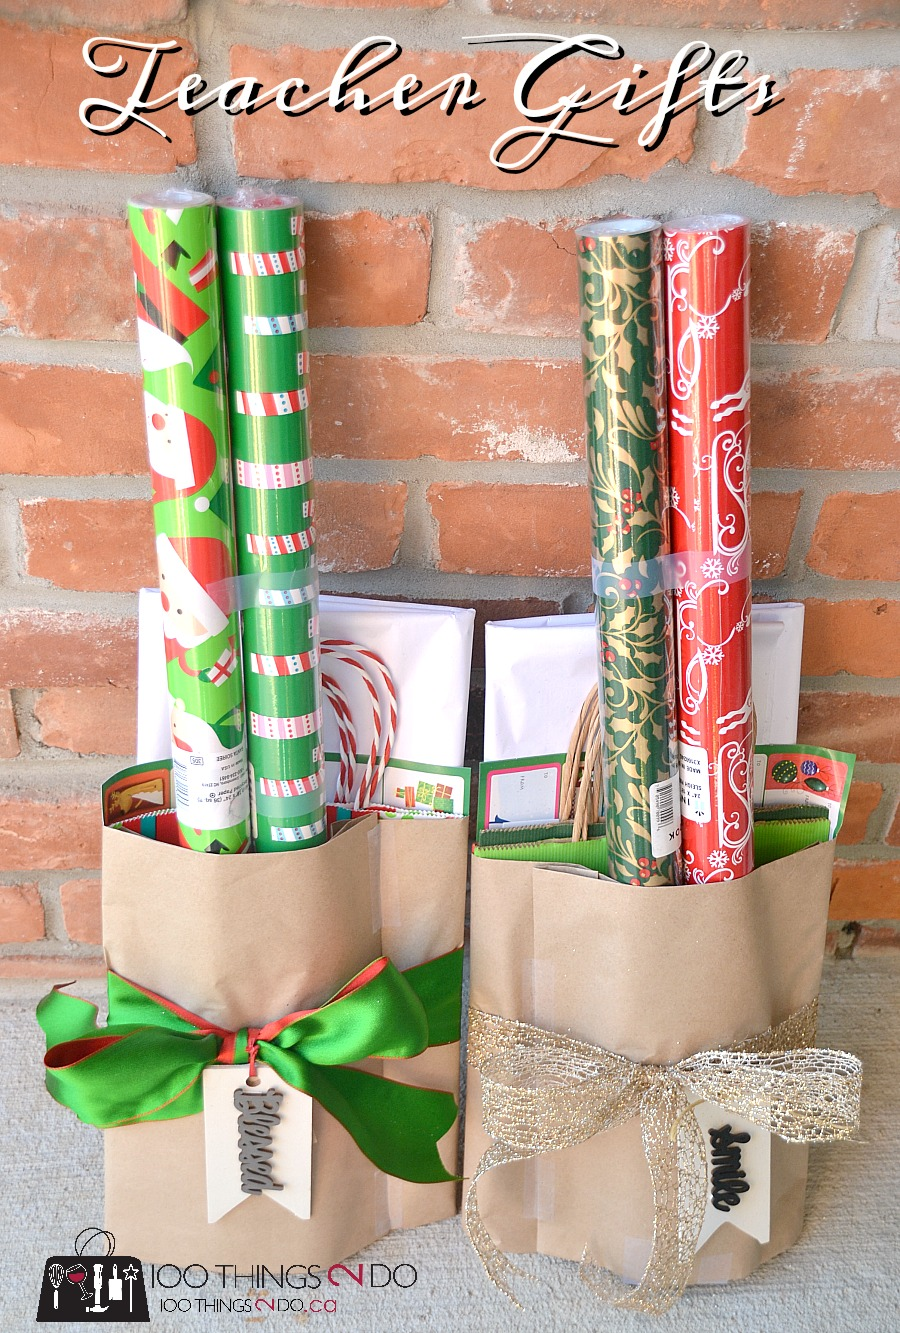 Teacher gift, neighbour gift, gift idea, wrapping paper, gift wrap, inexpensive gift ideas